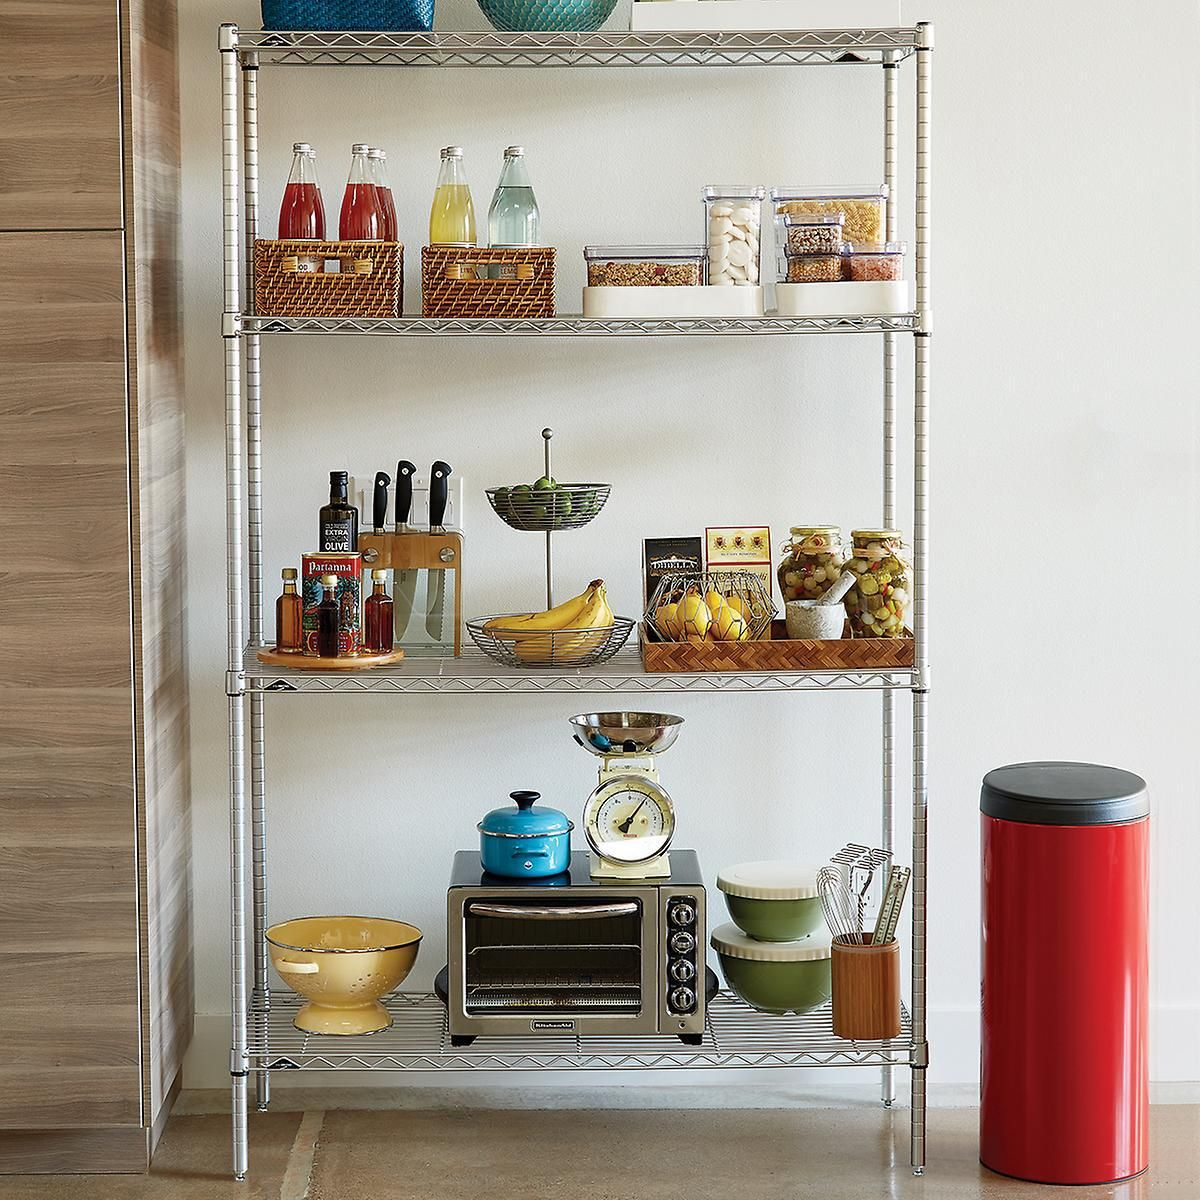 InterMetro Special Offer Unit   Shelf supports, Container store and ...